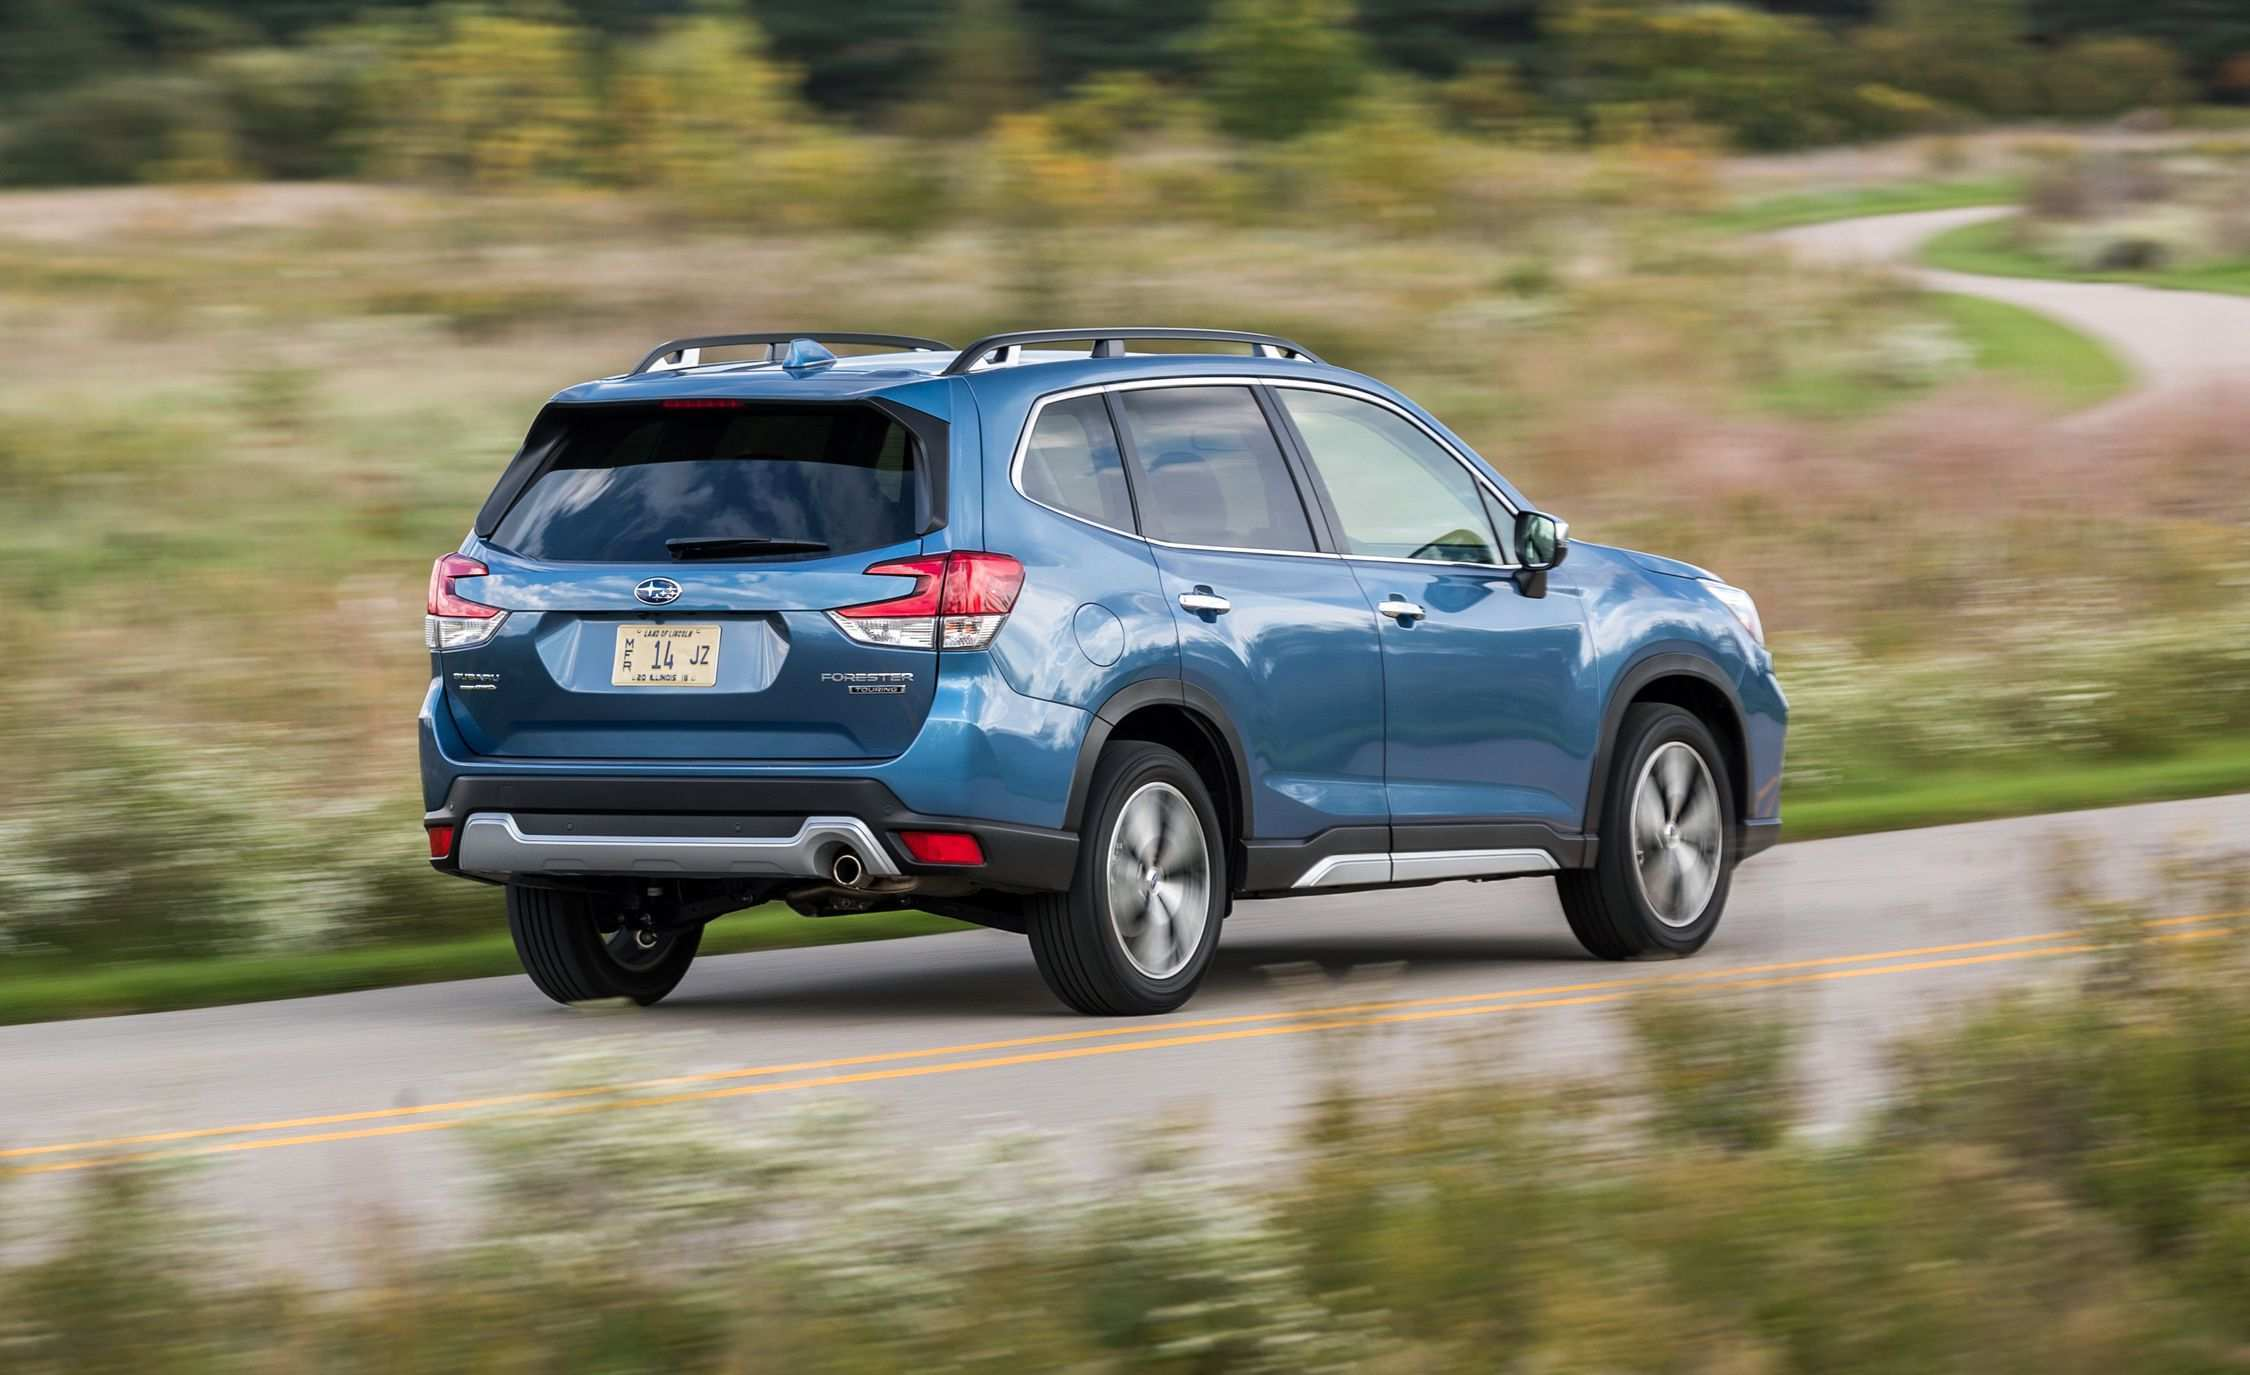 45 Concept of 2019 Subaru Forester Sport Price and Review with 2019 Subaru Forester Sport